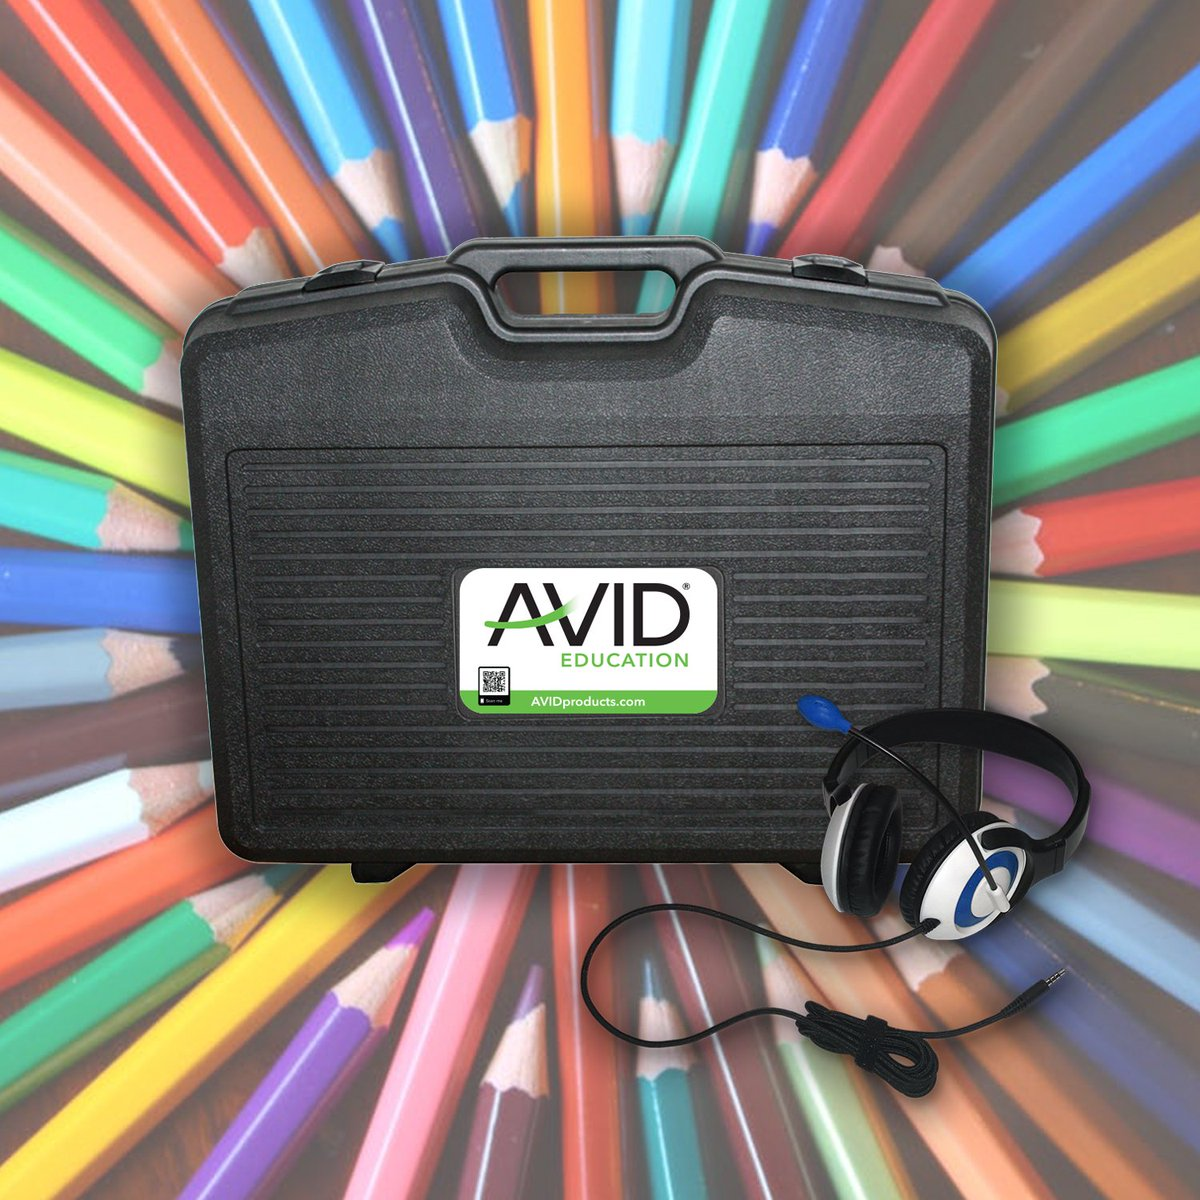 We love our handy Class Pack for teachers, and if you're at #TCEA today you can win your own! Come by booth 880 before 3pm to enter. See you soon! 🎧  #edtech #avideducation